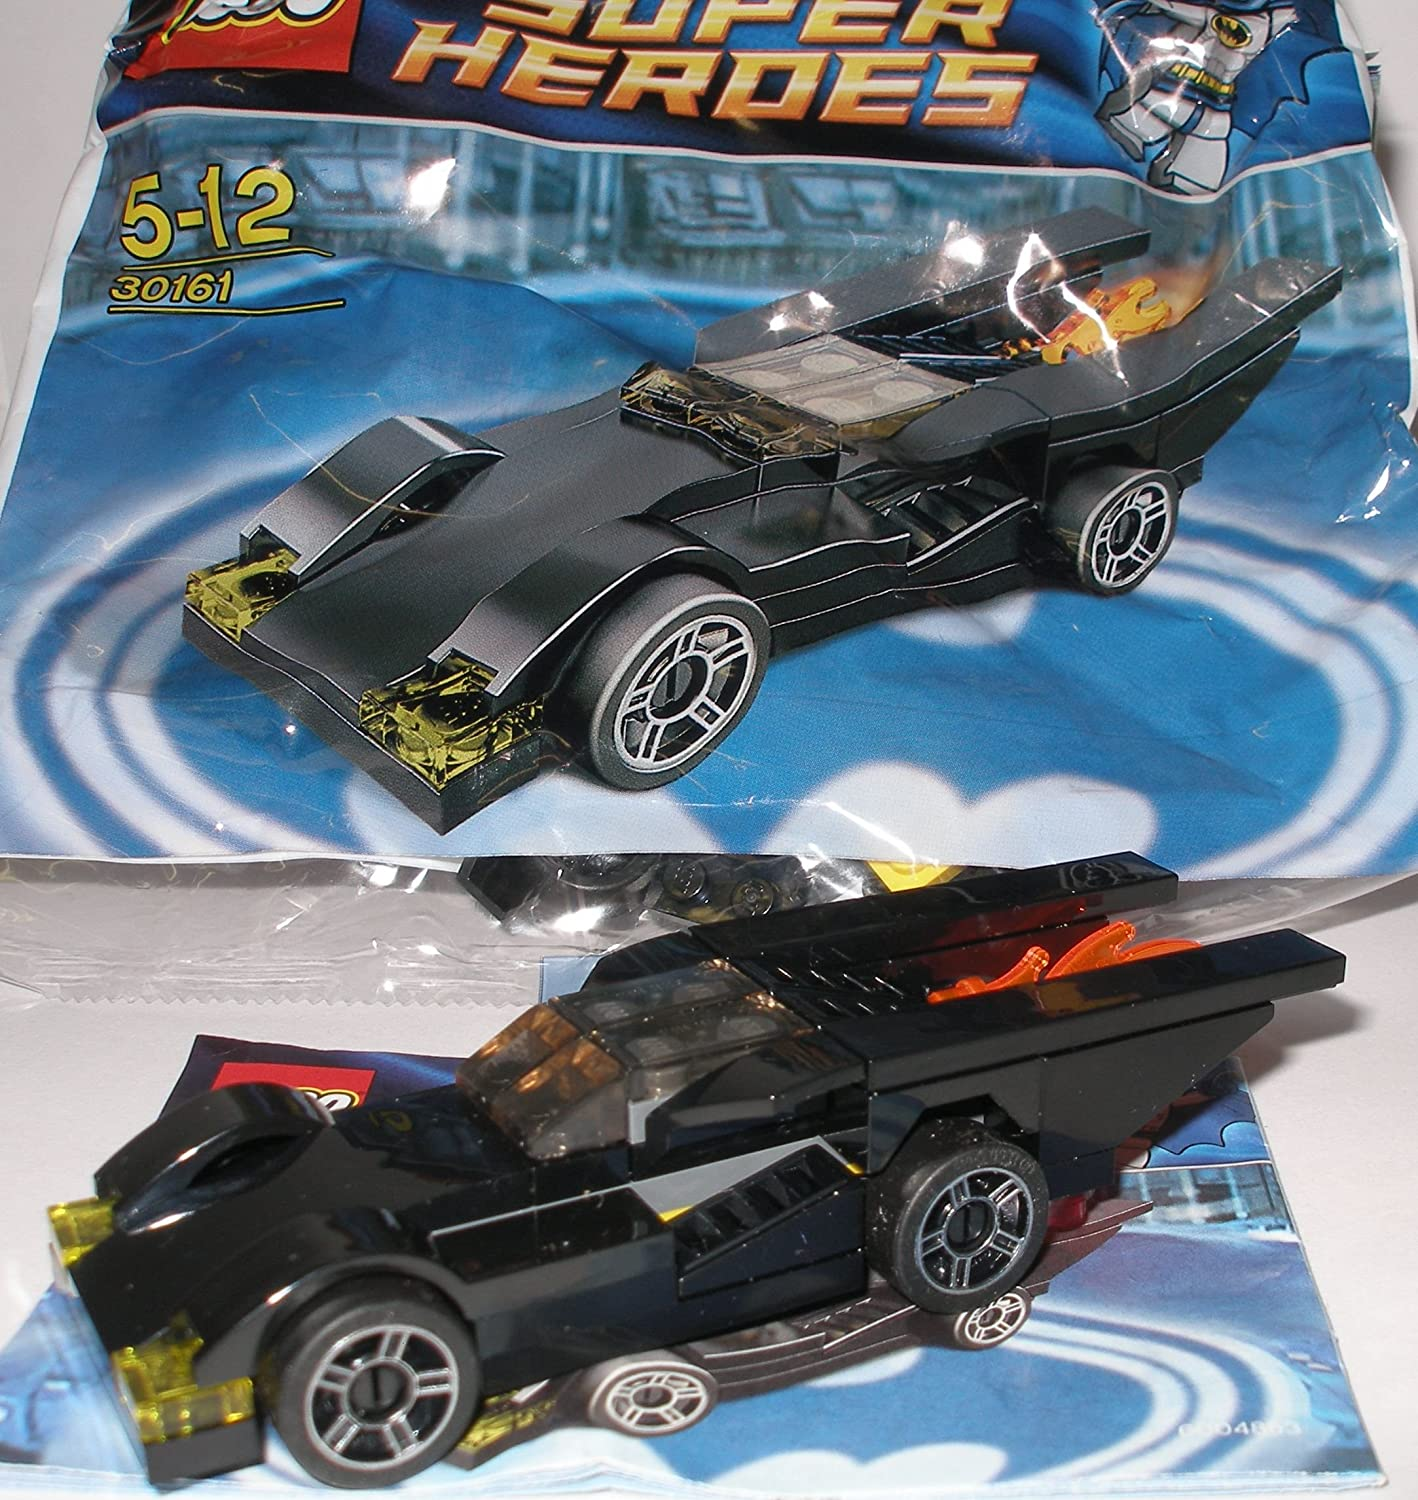 LEGO Super Heroes 30161 Batmobile Bagged Set